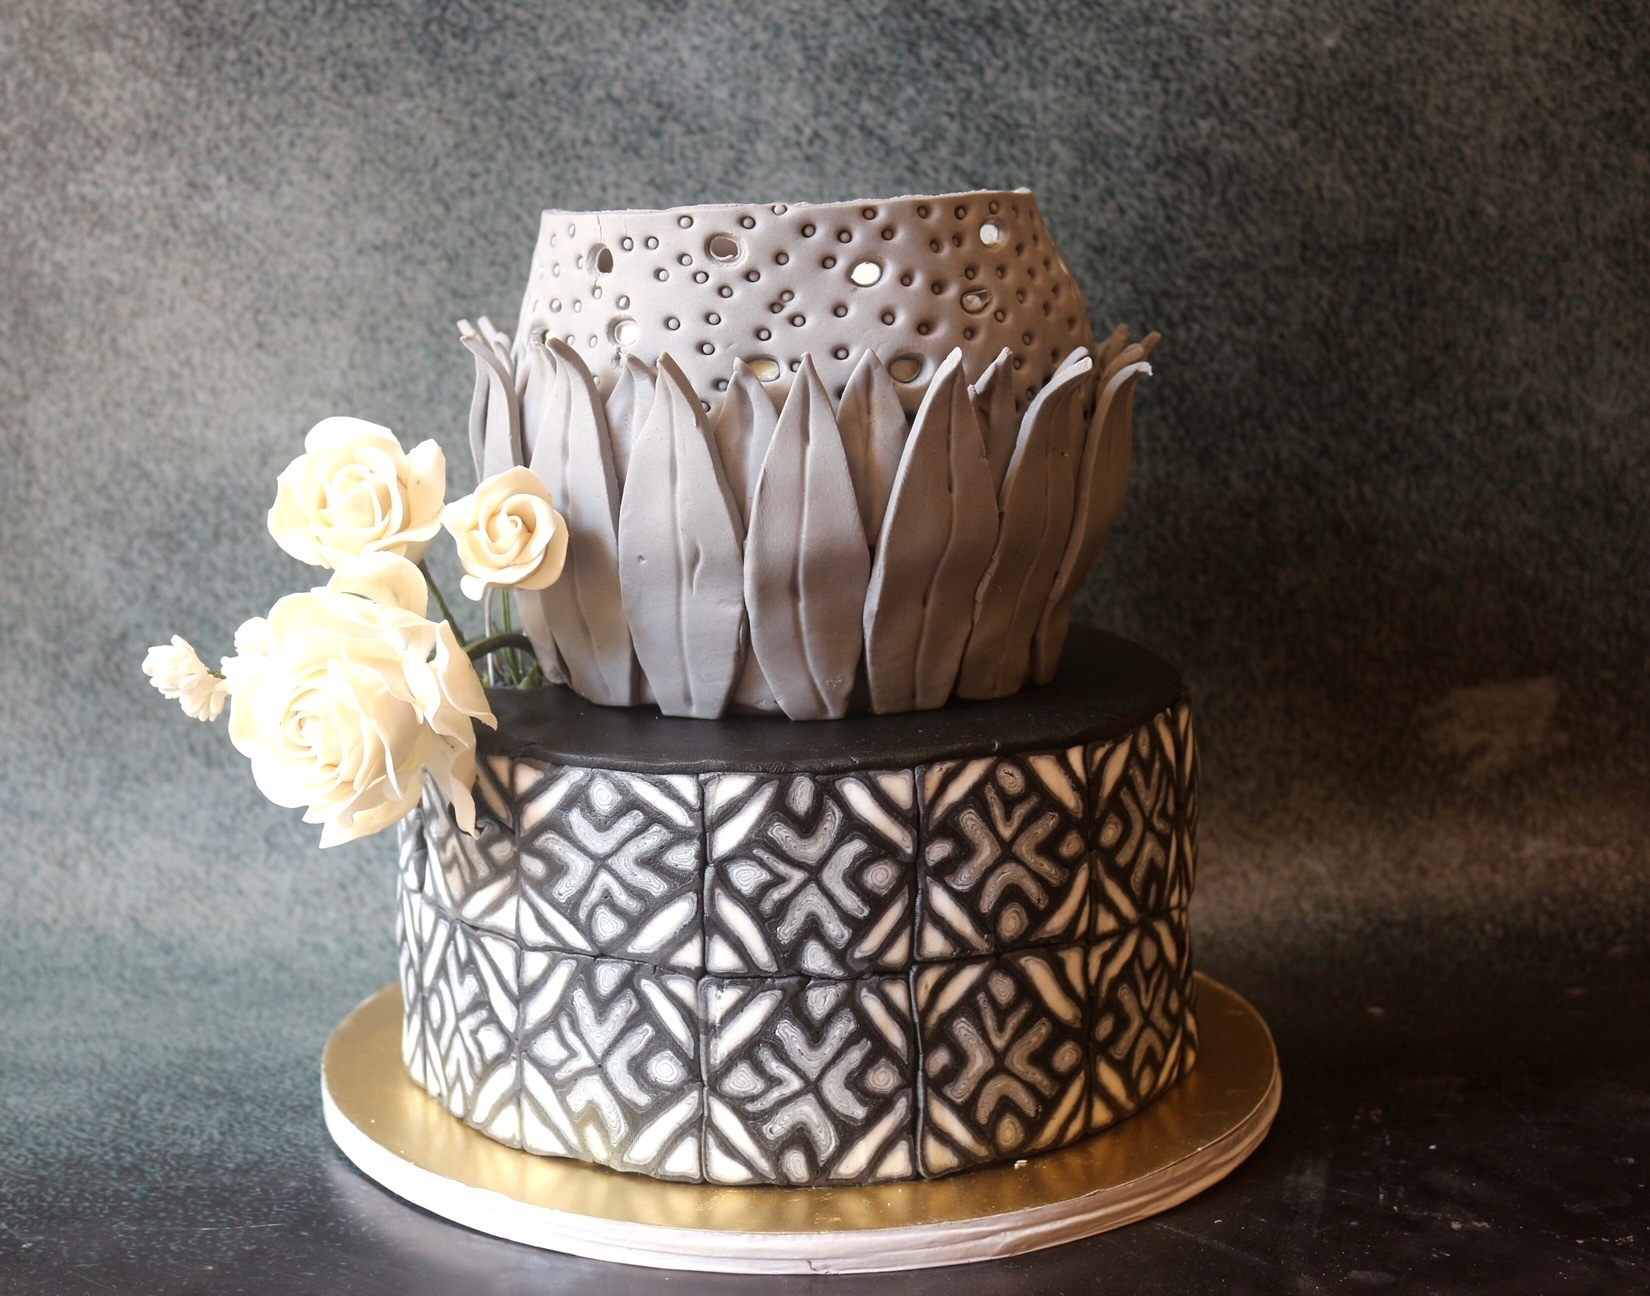 Taupe and gray fondant wedding cake with white flower